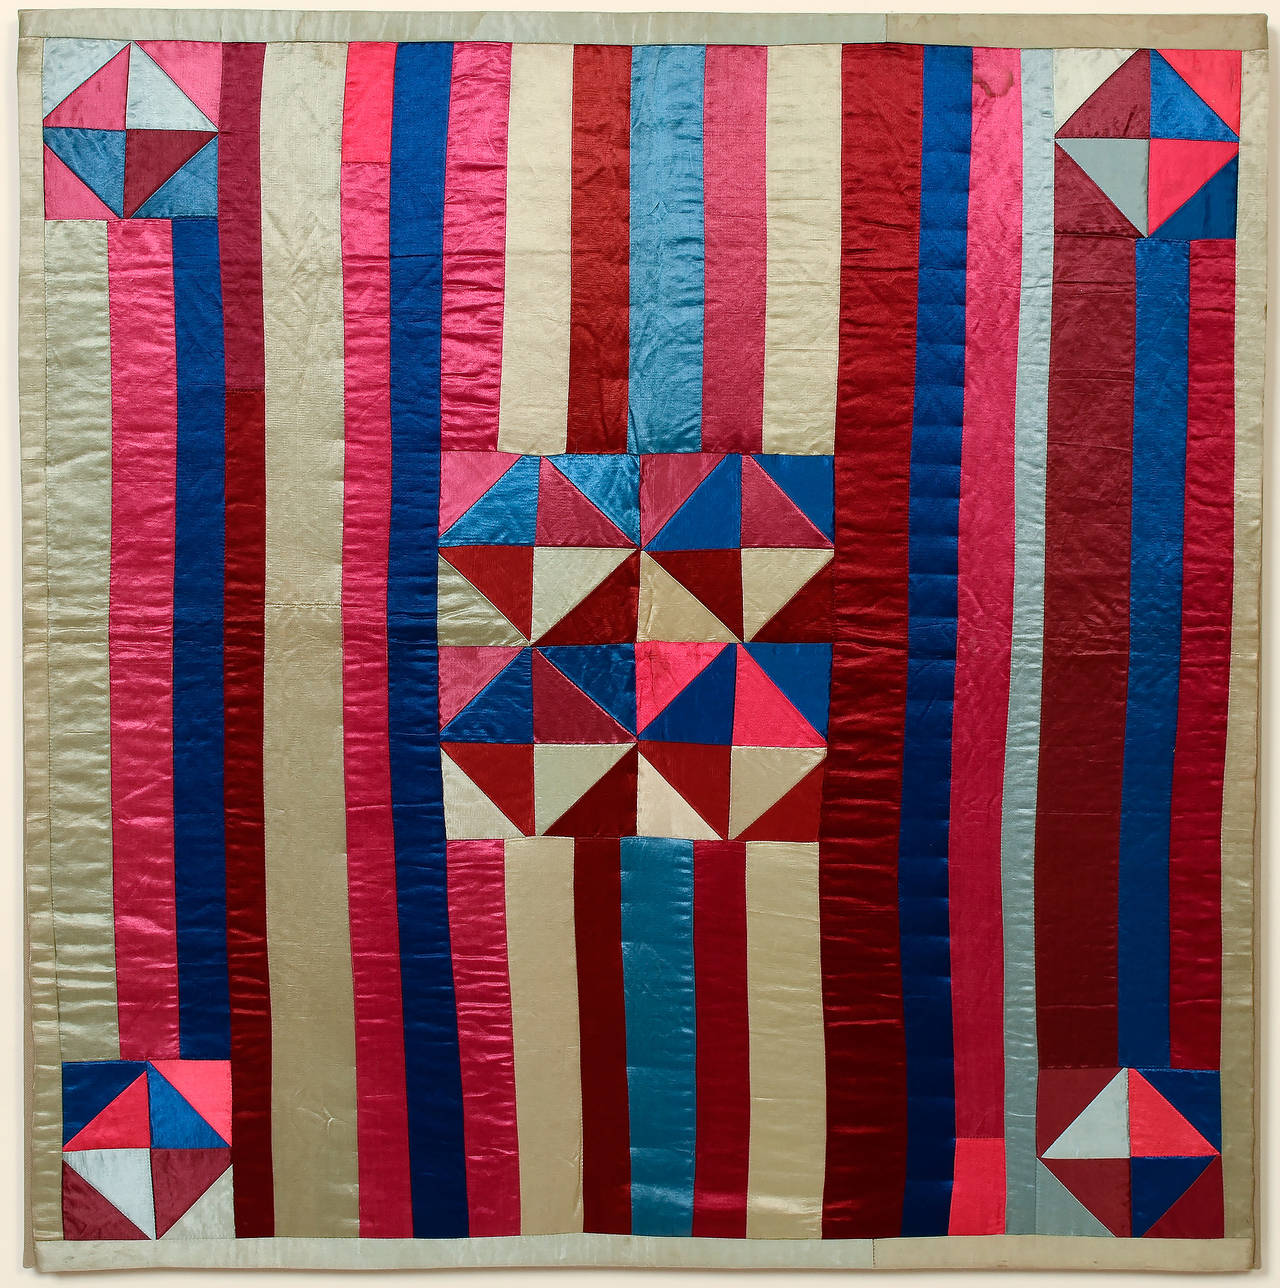 This hourglass crib quilt on a striped ground is an unusual but very successful pairing of patterns. The choice of satin fabrics is also out of the ordinary. It is in pristine condition and is mounted on a stretcher measuring 31